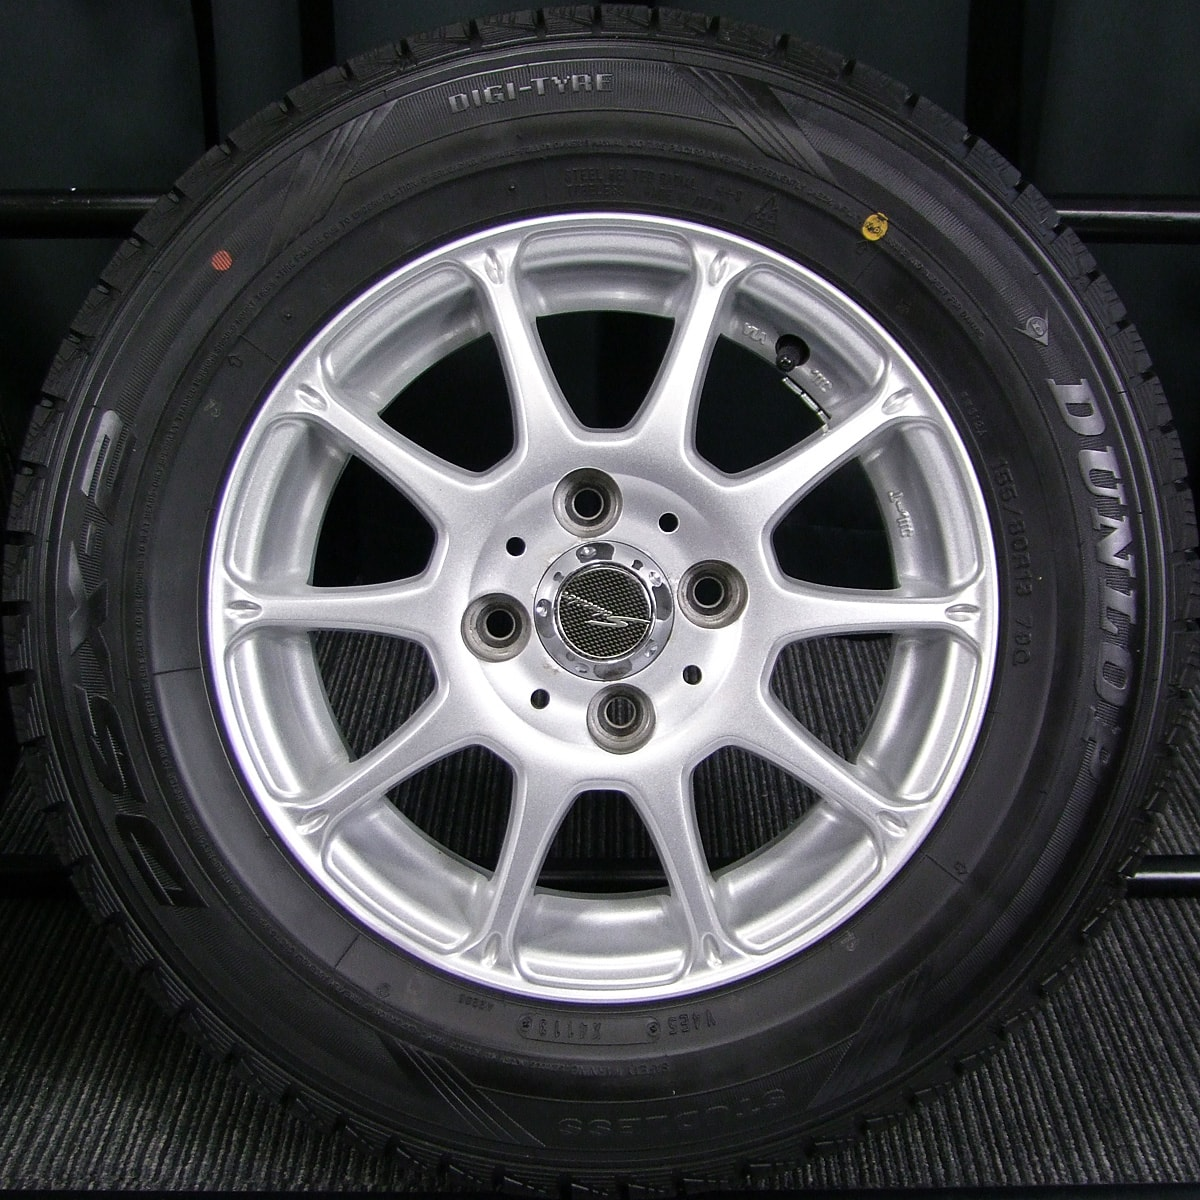 A-TECH SCHNEIDER BREAST シルバー DUNLOP DSX-2 155/80R13 4本SET